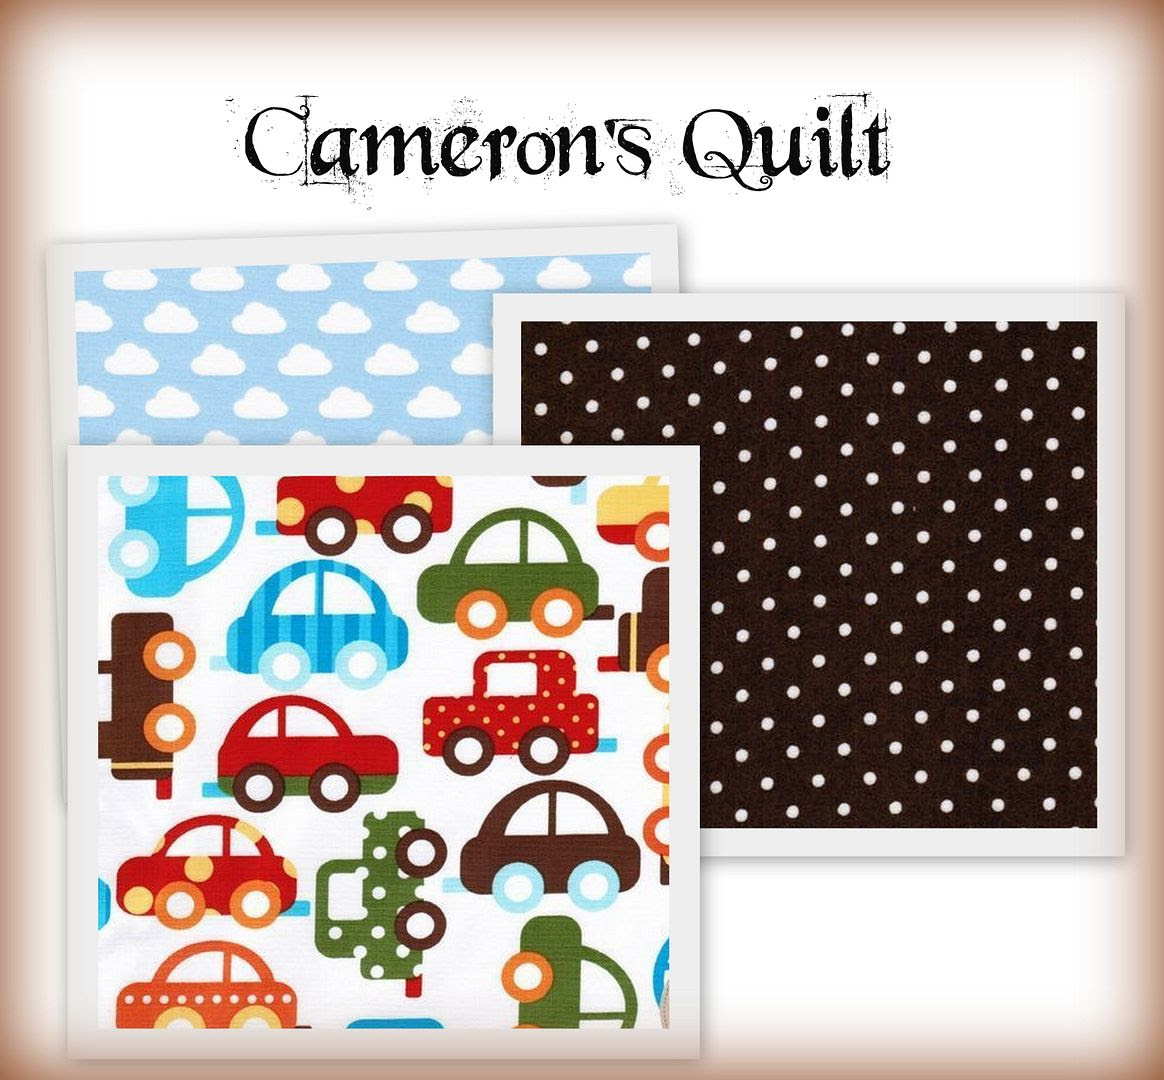 photo CameronsQuilt_zpsc6f0044f.jpg